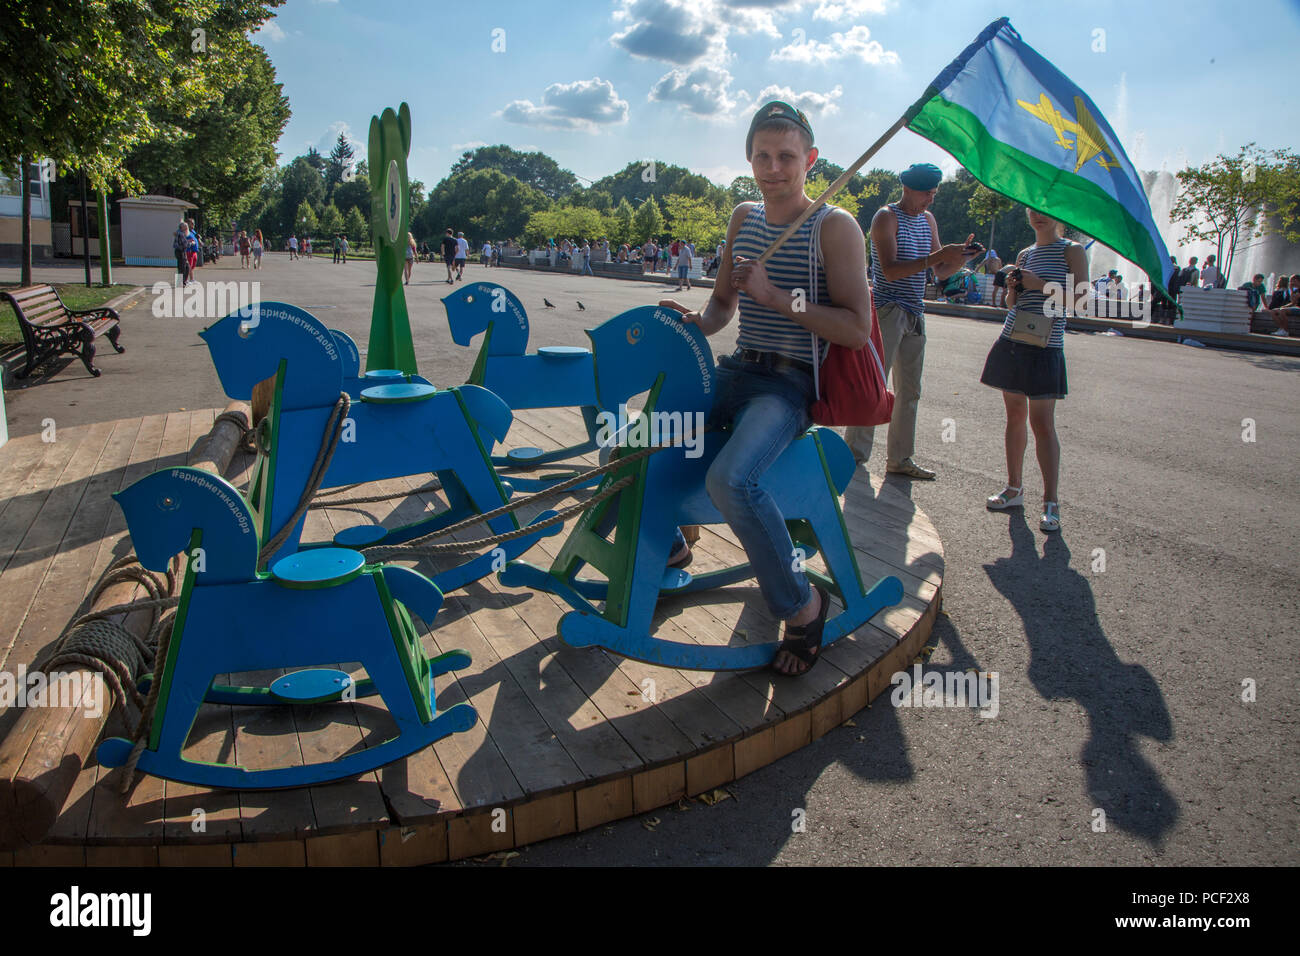 Paratrooper in a blue beret riding a children's horse in Gorky Park durign celebration of the airborne troops day in Moscow, Russia. - Stock Image